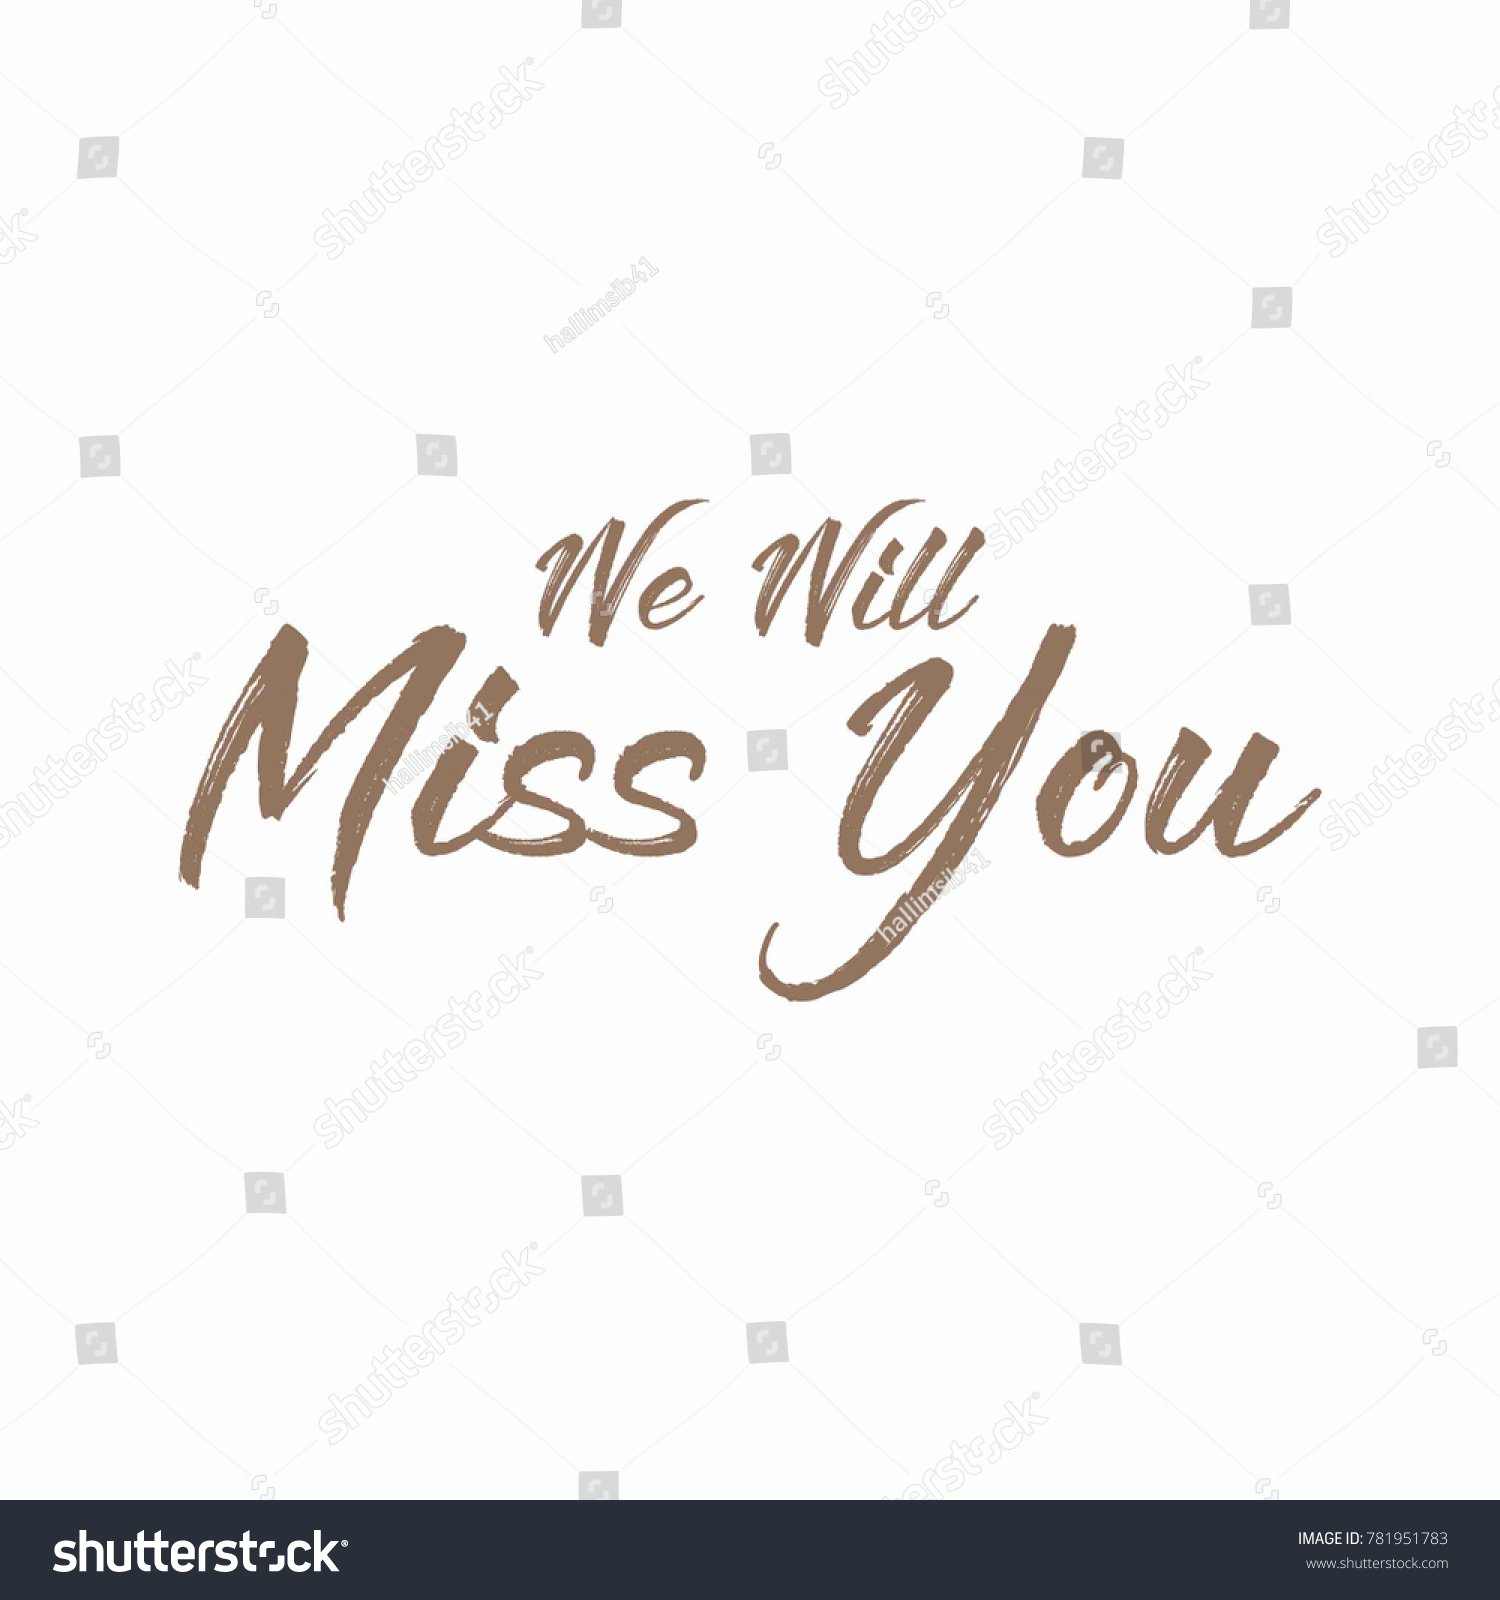 Farewell Party We Will Miss You Stock Vector 781951783 - Shutterstock